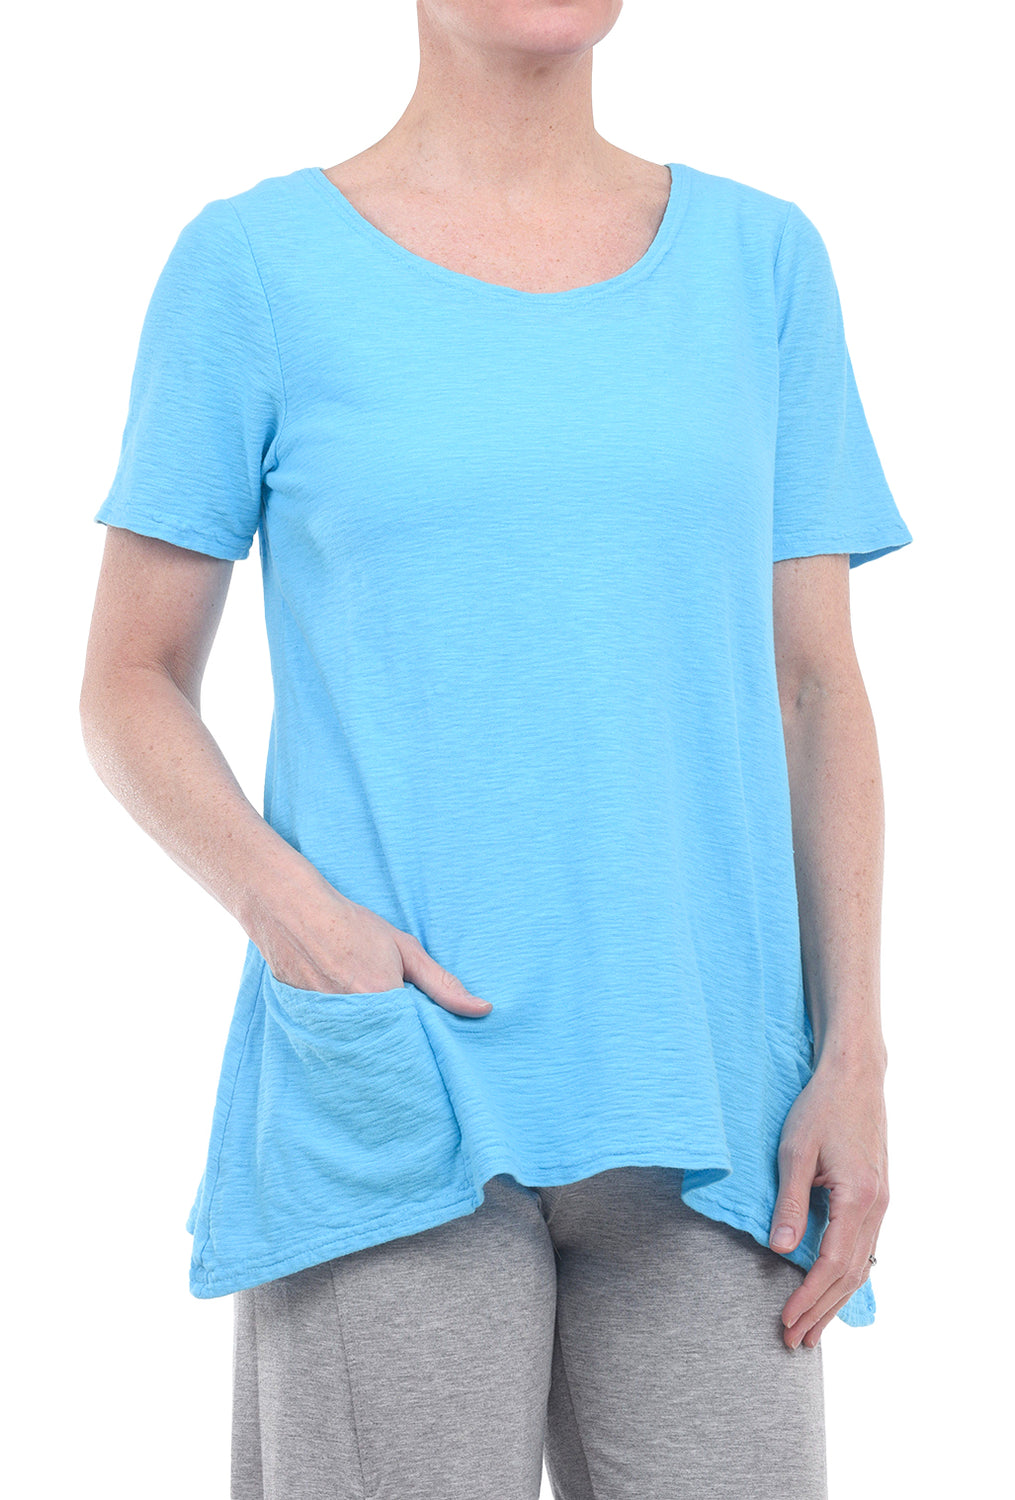 Cut Loose Pocket Swing Tee, Atoll Blue